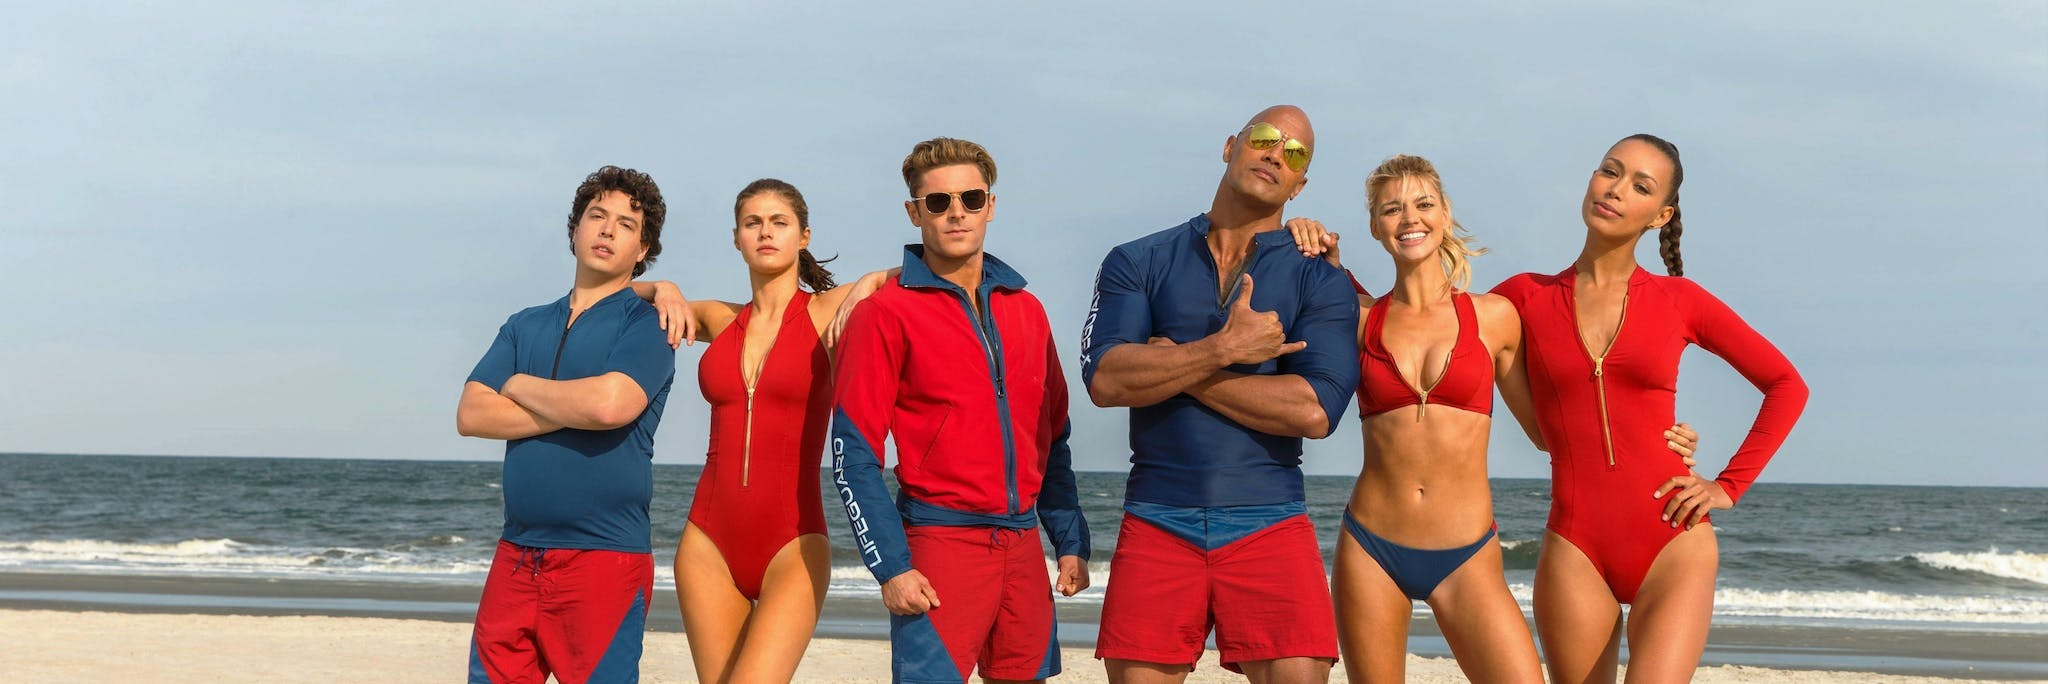 Baywatch (2017) Soundtrack Music - Tunefind